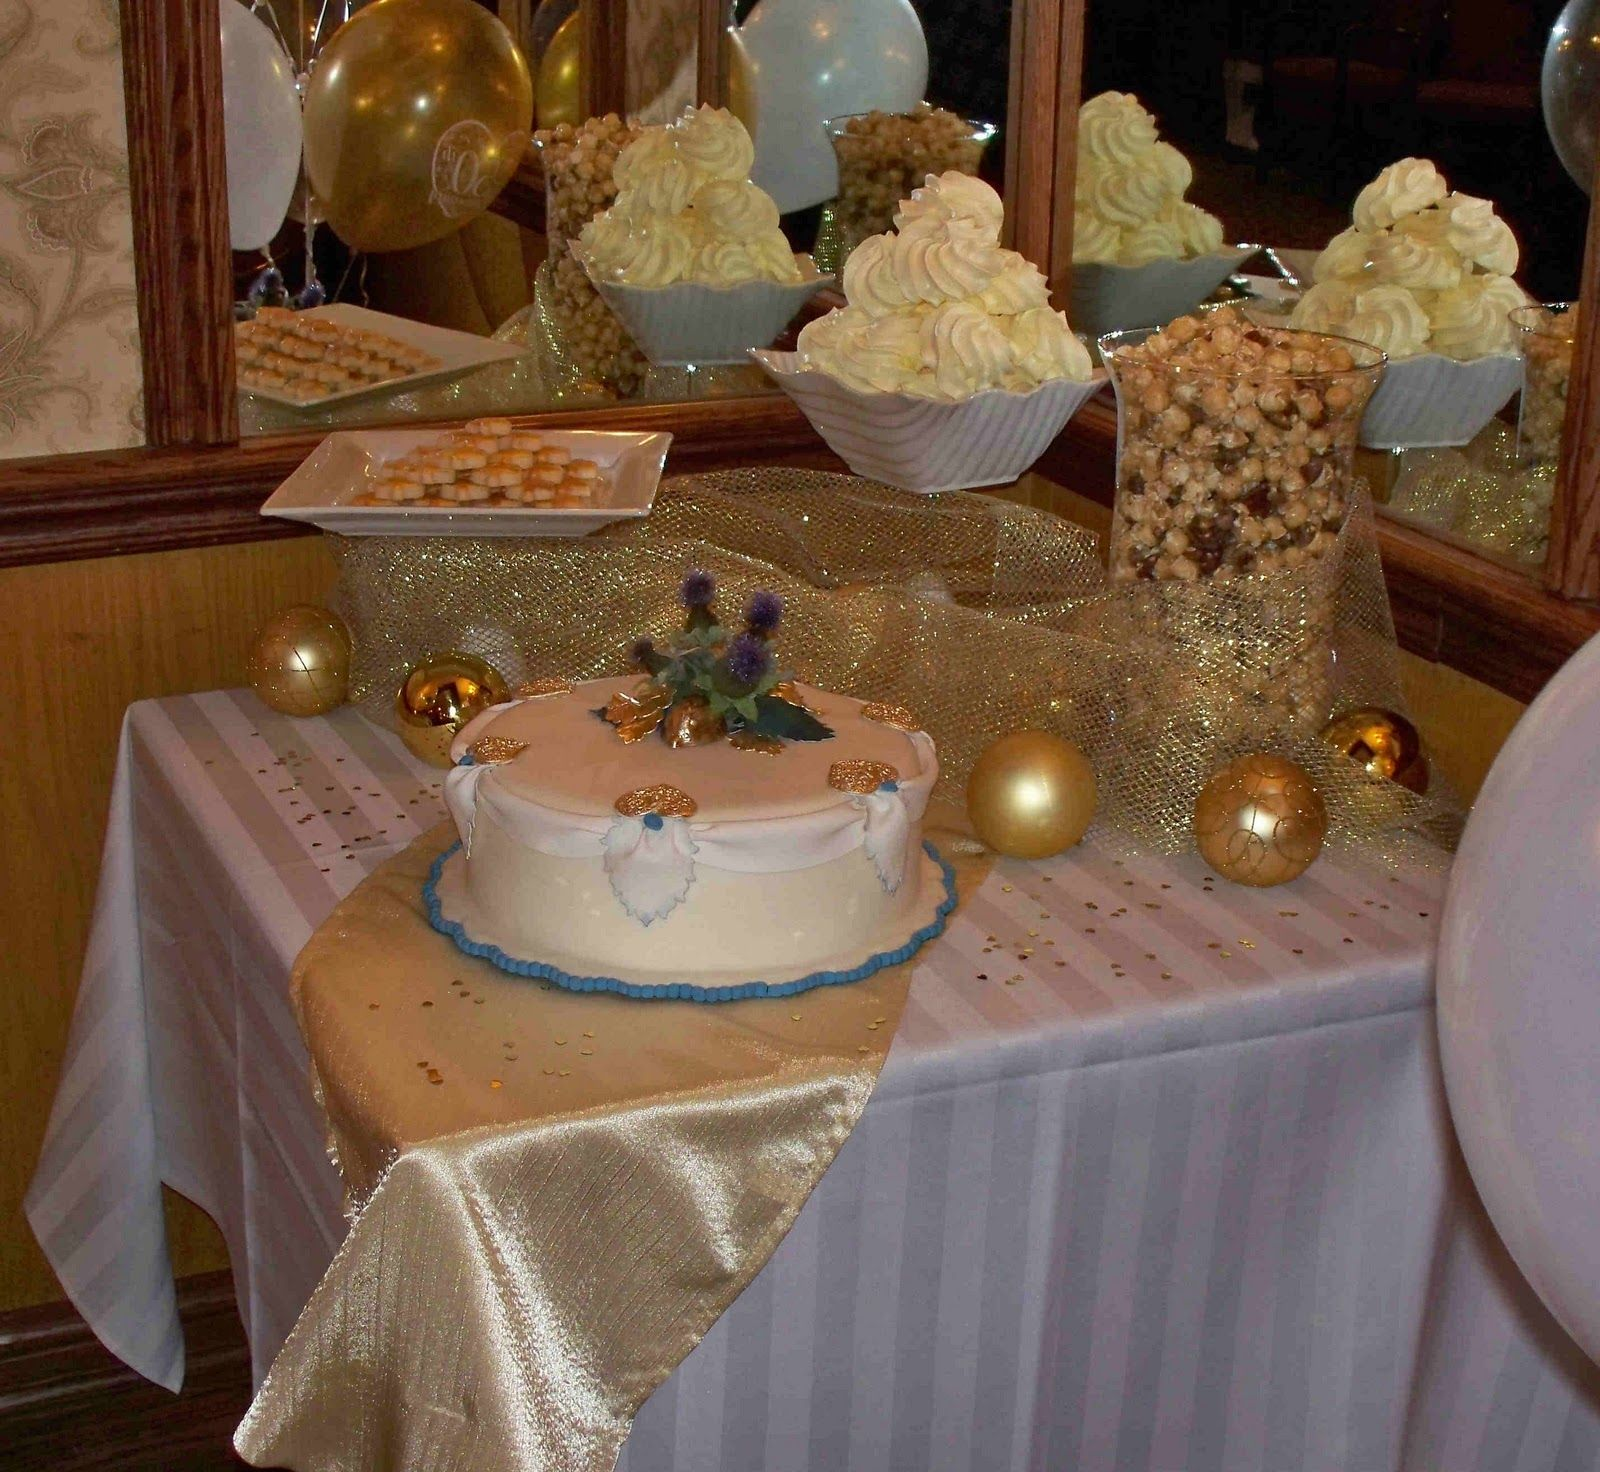 Wedding Gift Ideas On A Budget: 50th Anniversary Party Ideas On A Budget